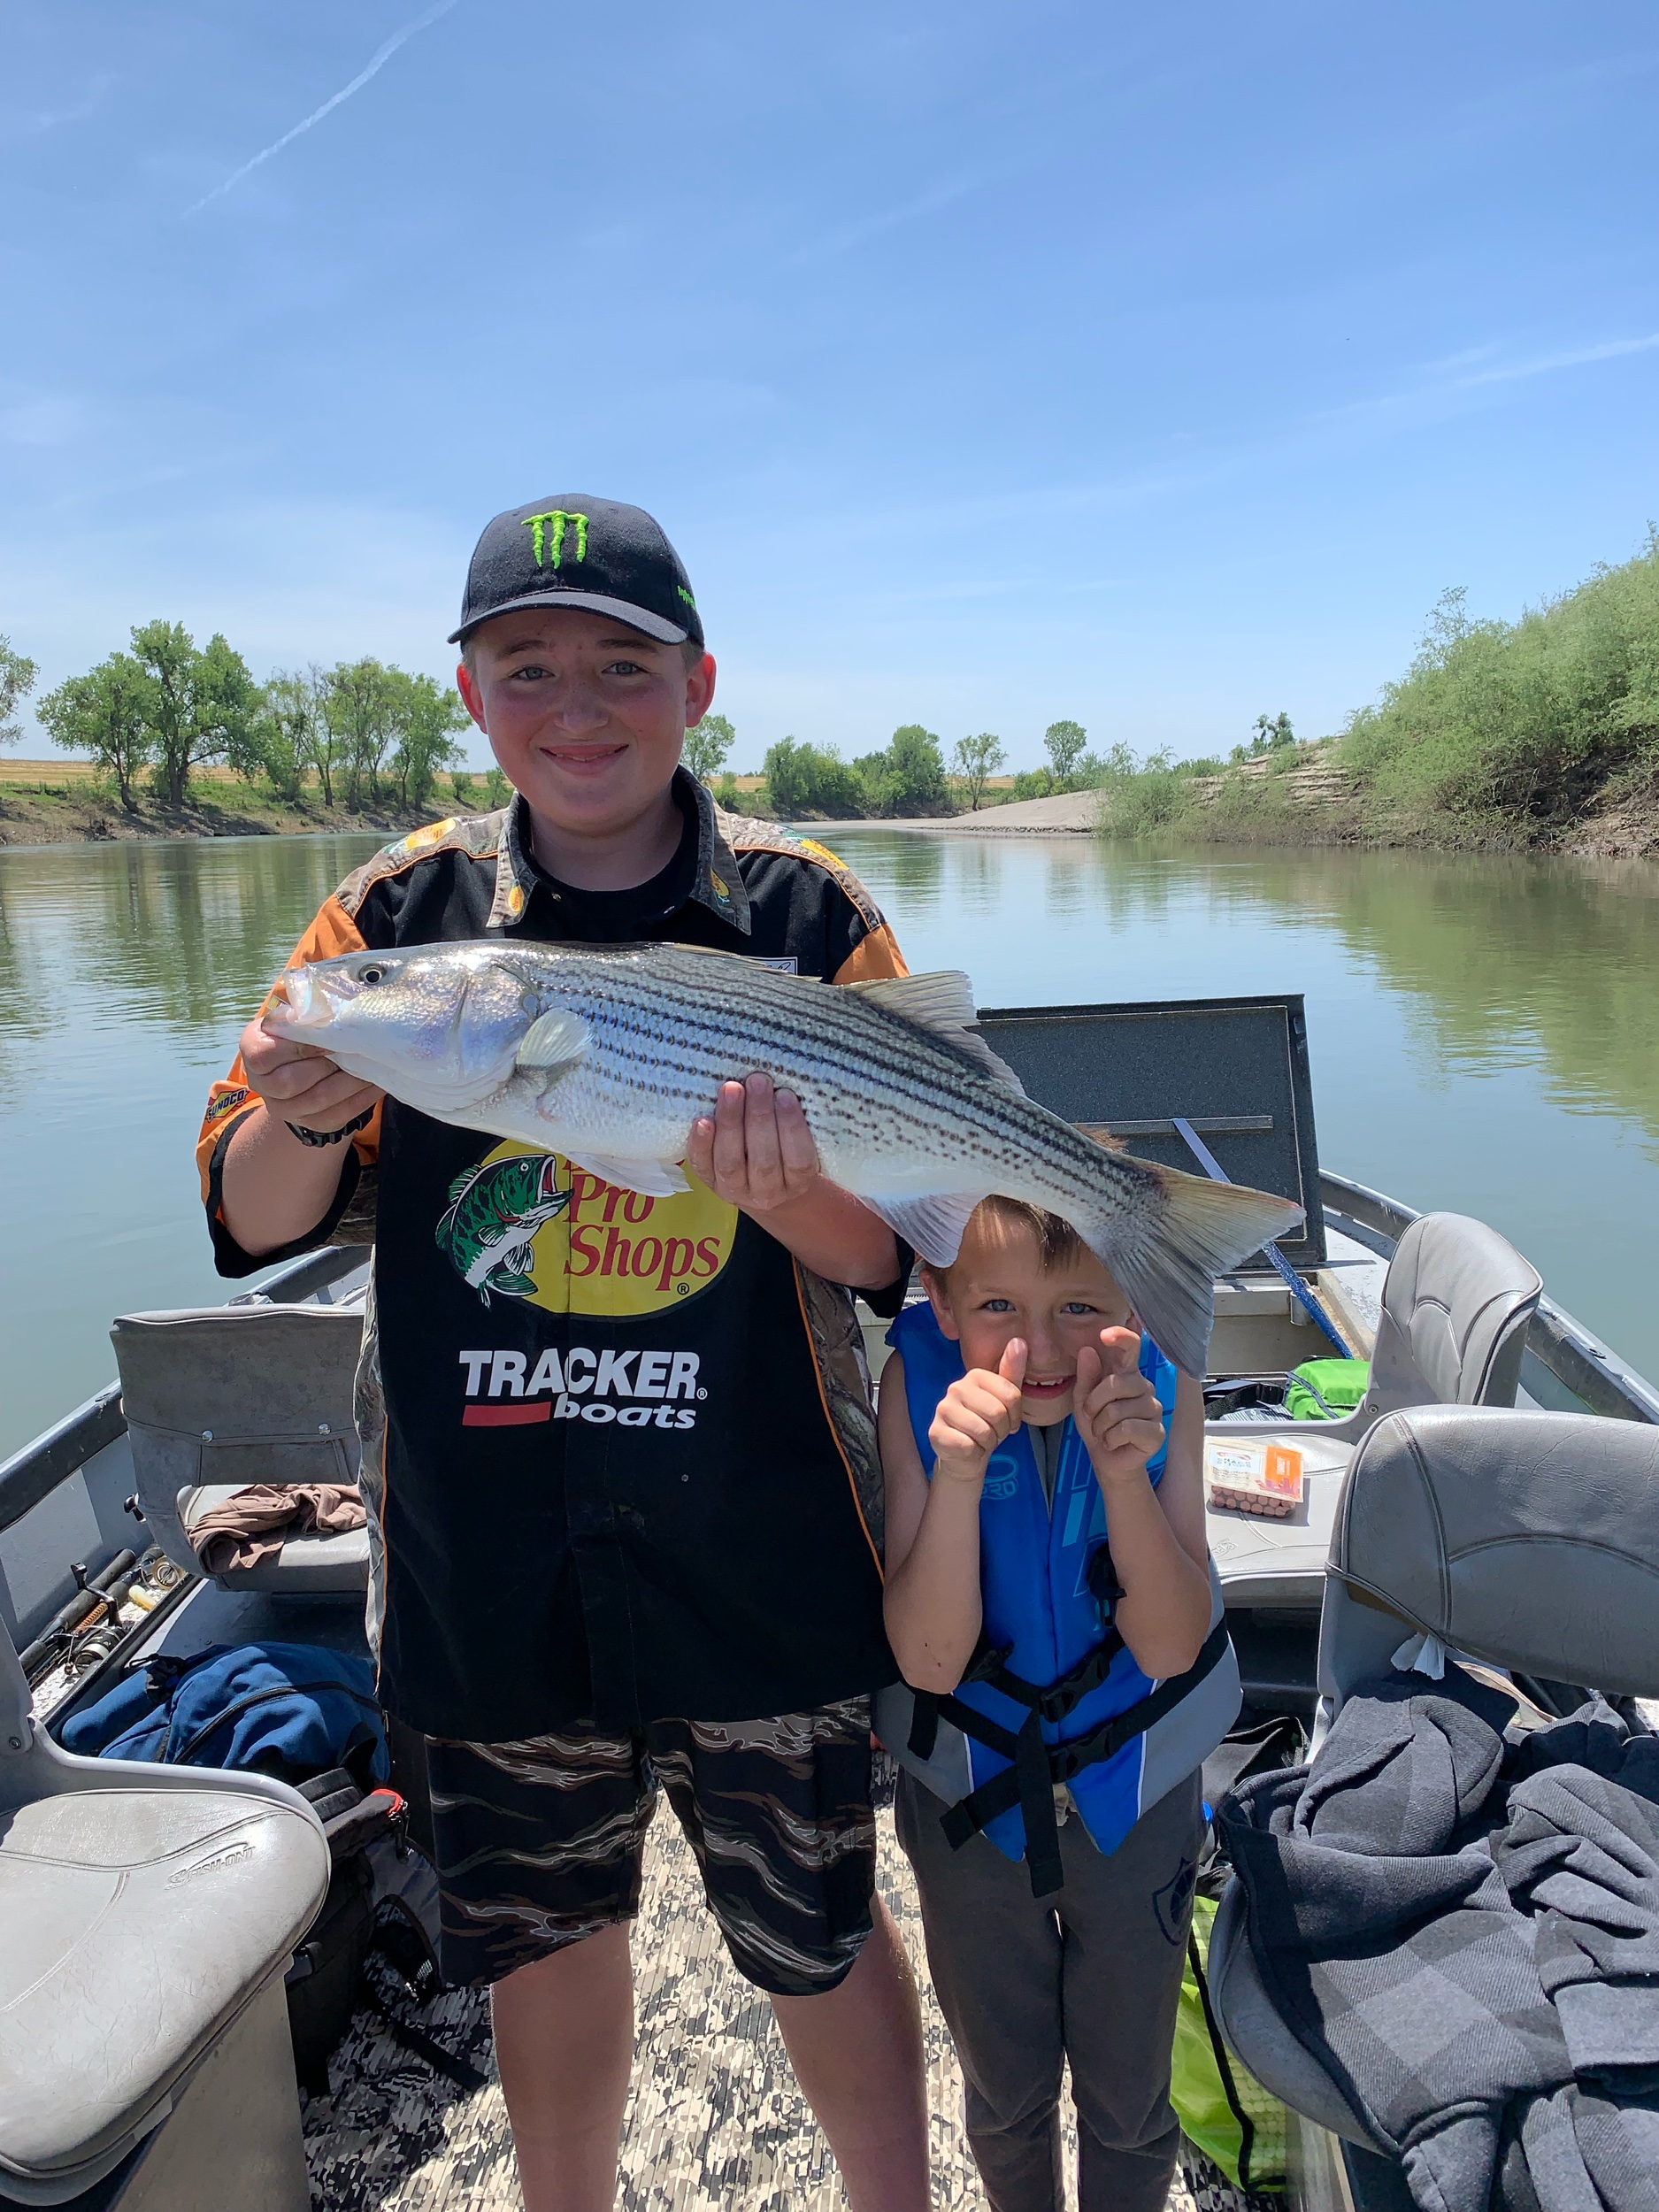 Connor and Carson Ortiz from Placerville, Ca enjoy a day of striped bass fishing with  SalmonSacRiver.com  fishing guide Mike Rasmussen.  Mike's Fishing Guide & Charter Service For Sacramento River Fishing targeting King Salmon, Sockeye Salmon, Striped Bass, Sturgeon, Shad And Trout the best Sacramento River Fishing guide and Sacramento River Charter on Sac River